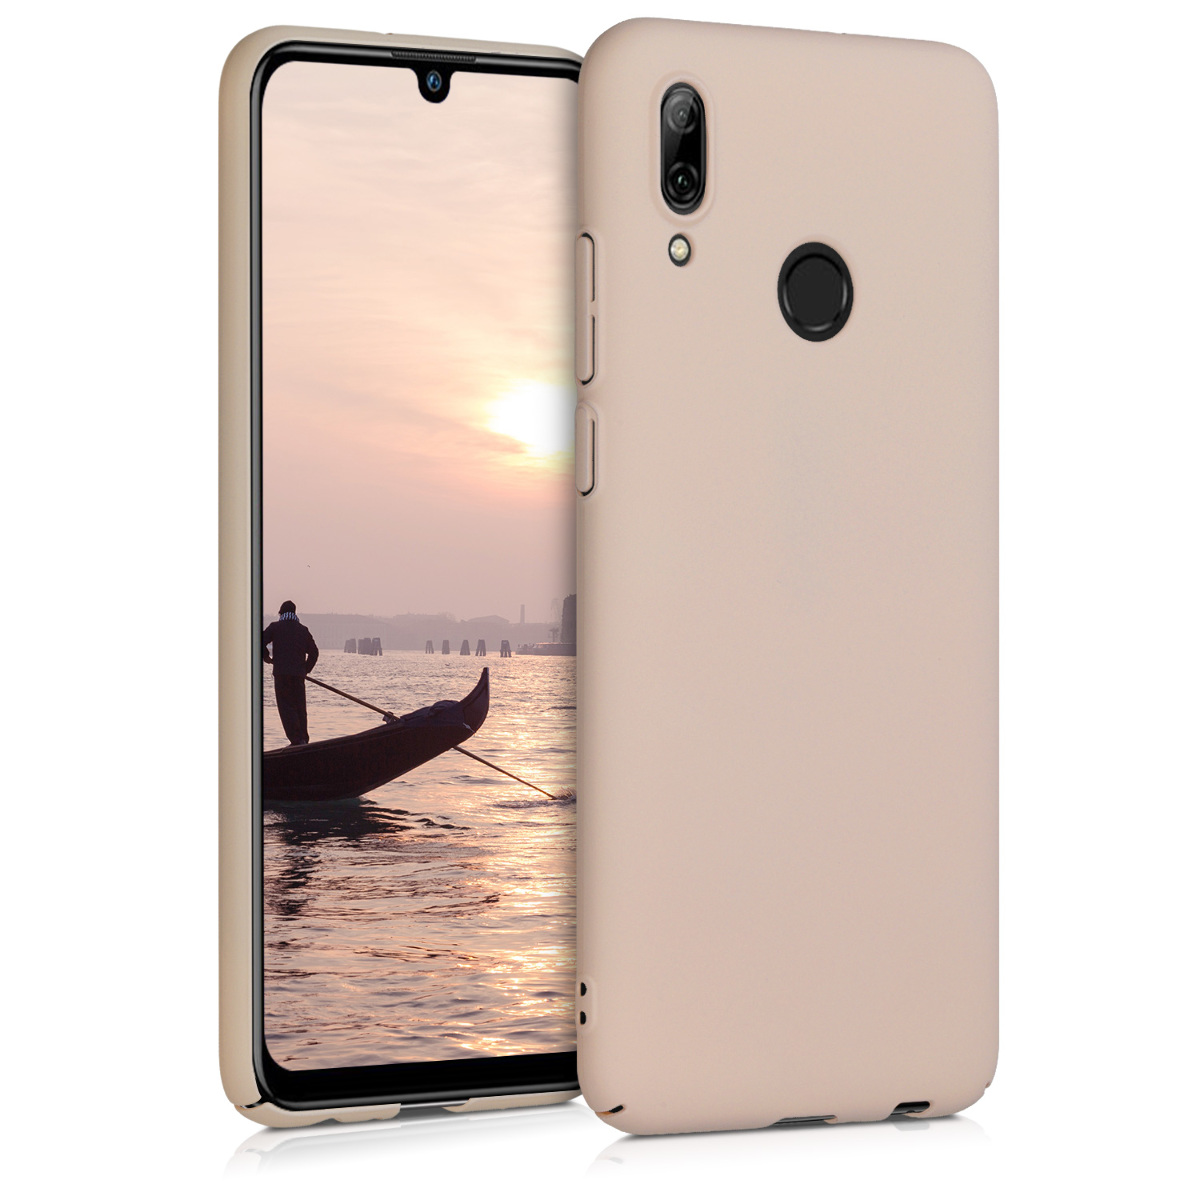 KW Σκληρή θήκη - Huawei P Smart (2019) -  Rose Gold Matte (47825.89)